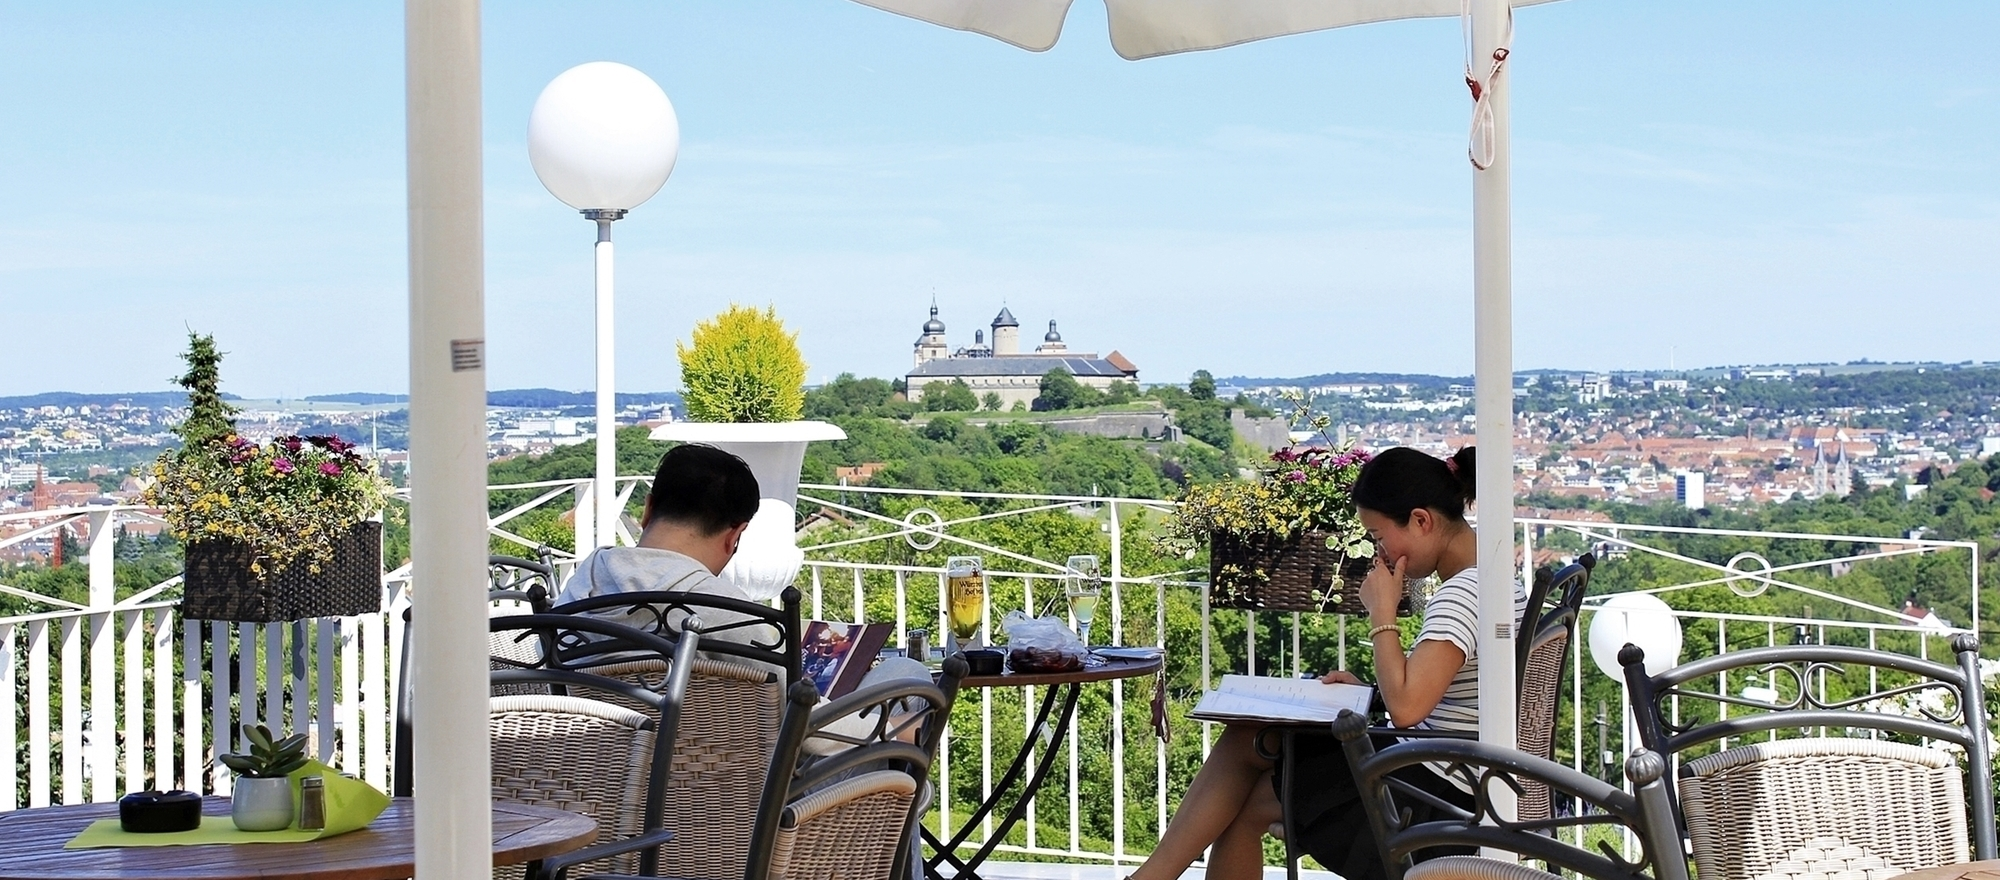 Idyllic situated terrace with different levels at the 3-star-superior hotel Ringhotel Wittelsbacher Hoeh in Wuerzburg